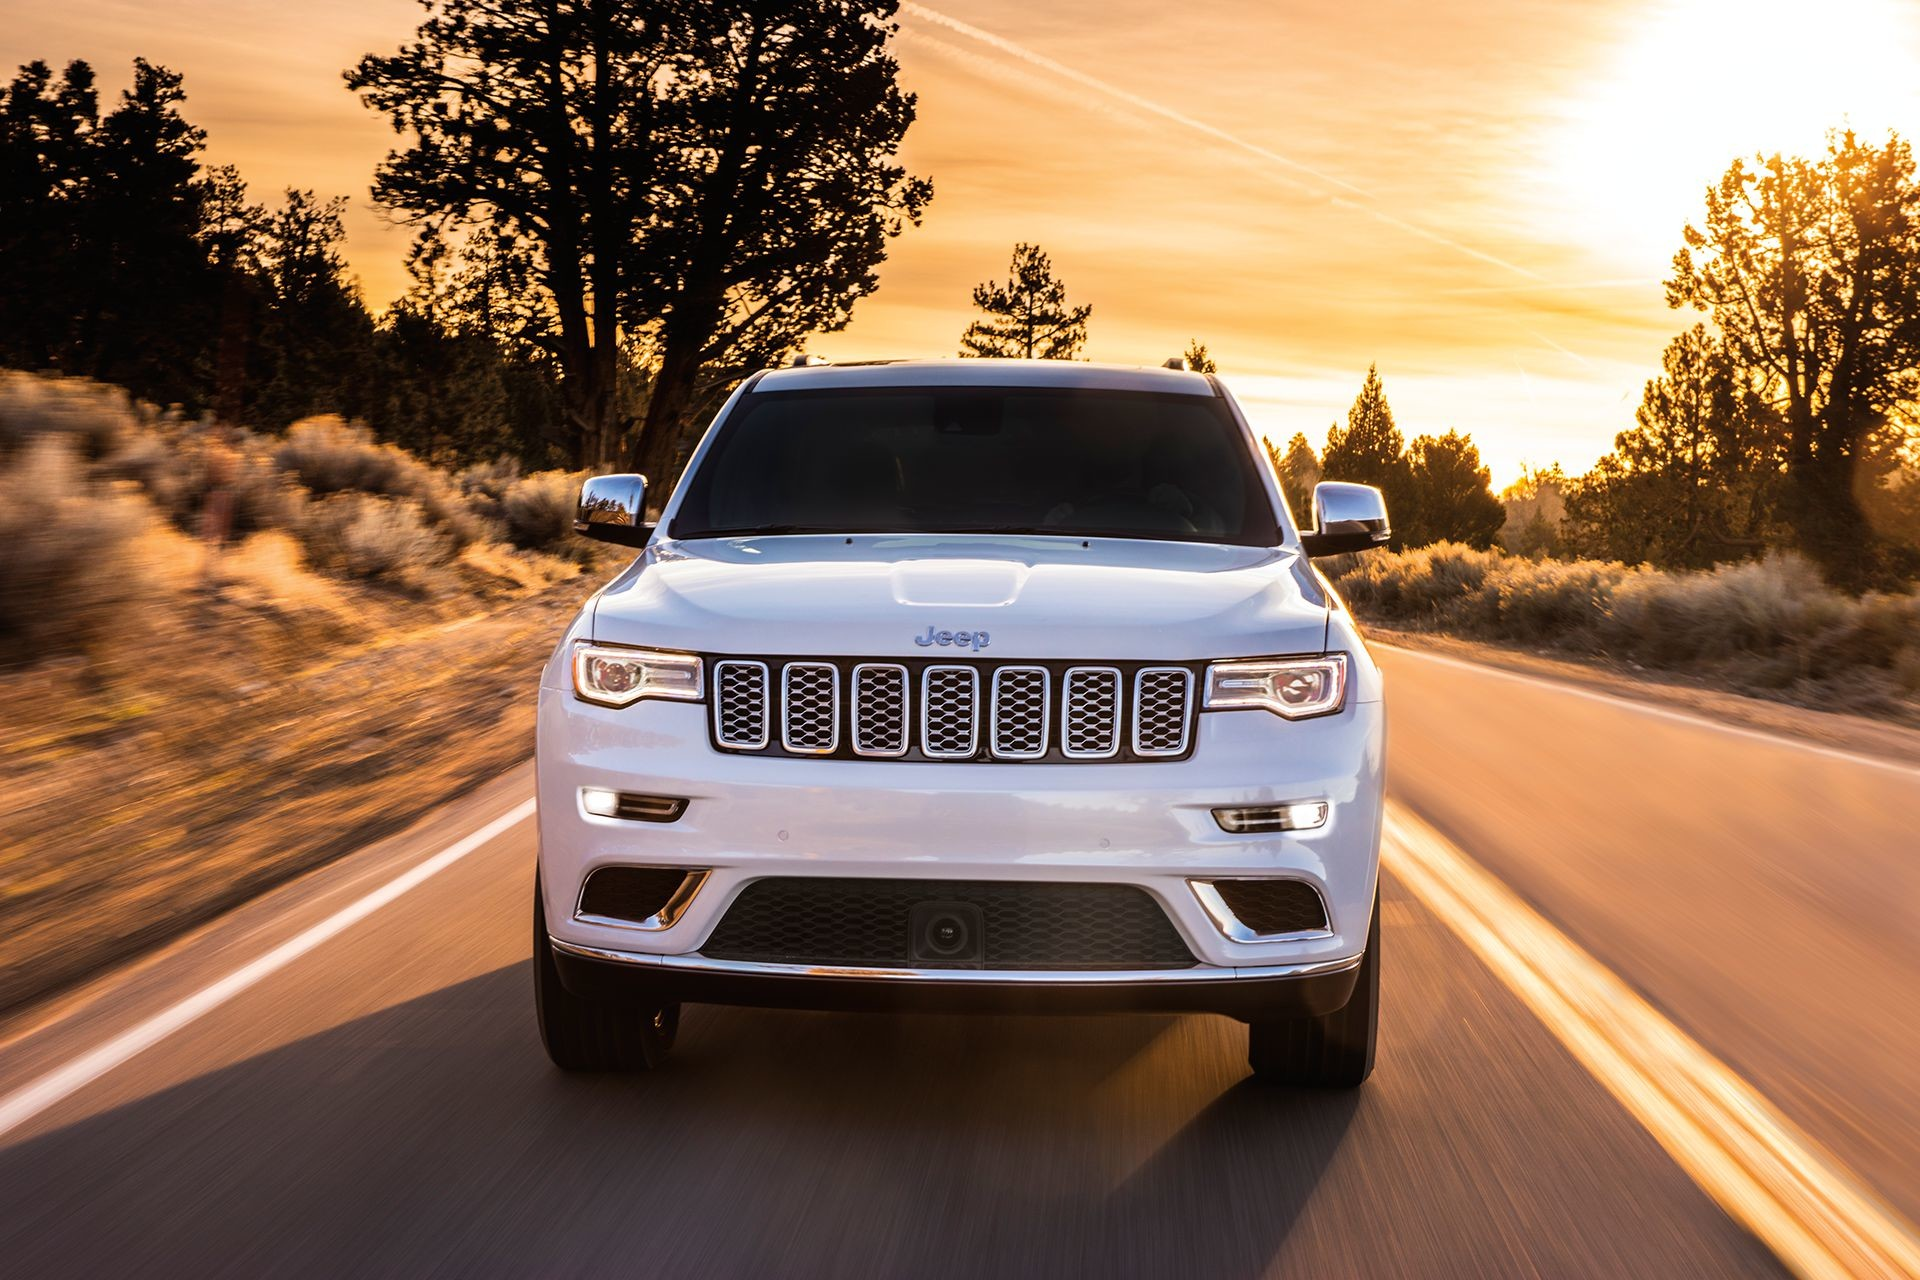 VUS Jeep Grand Cherokee 2018 – vue de face, illustré en blanc